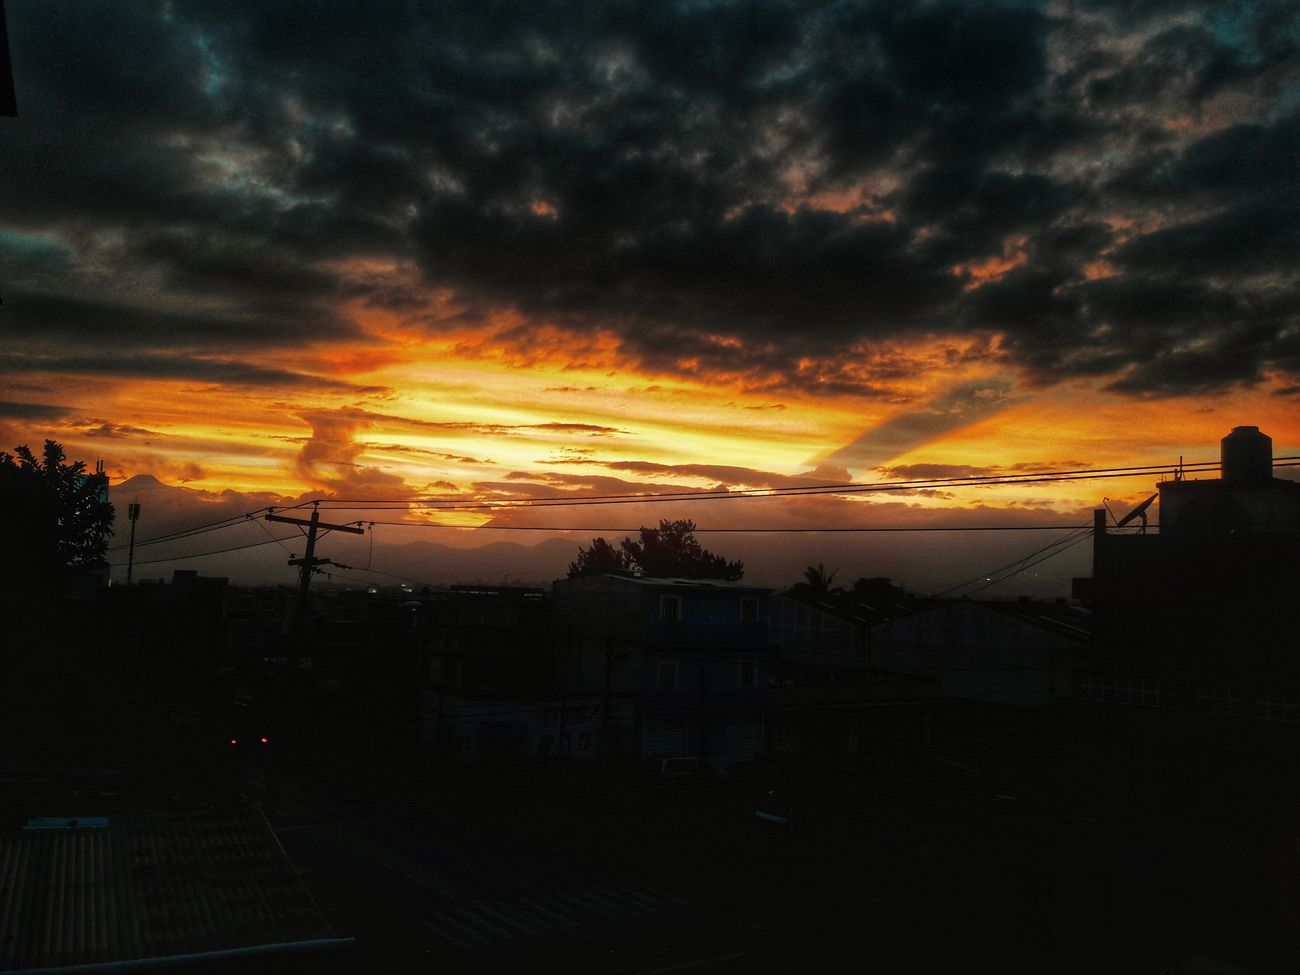 November is just amazing Sunset Beauty In Nature Nature Sky Vscocam Photooftheday Colorful Photography Popular Photos Skyporn Good Landscape_photography Vscogood VSCO Landscape ExploreEverything Photogrid Followforfollow Like Followme Photographer Guatemala